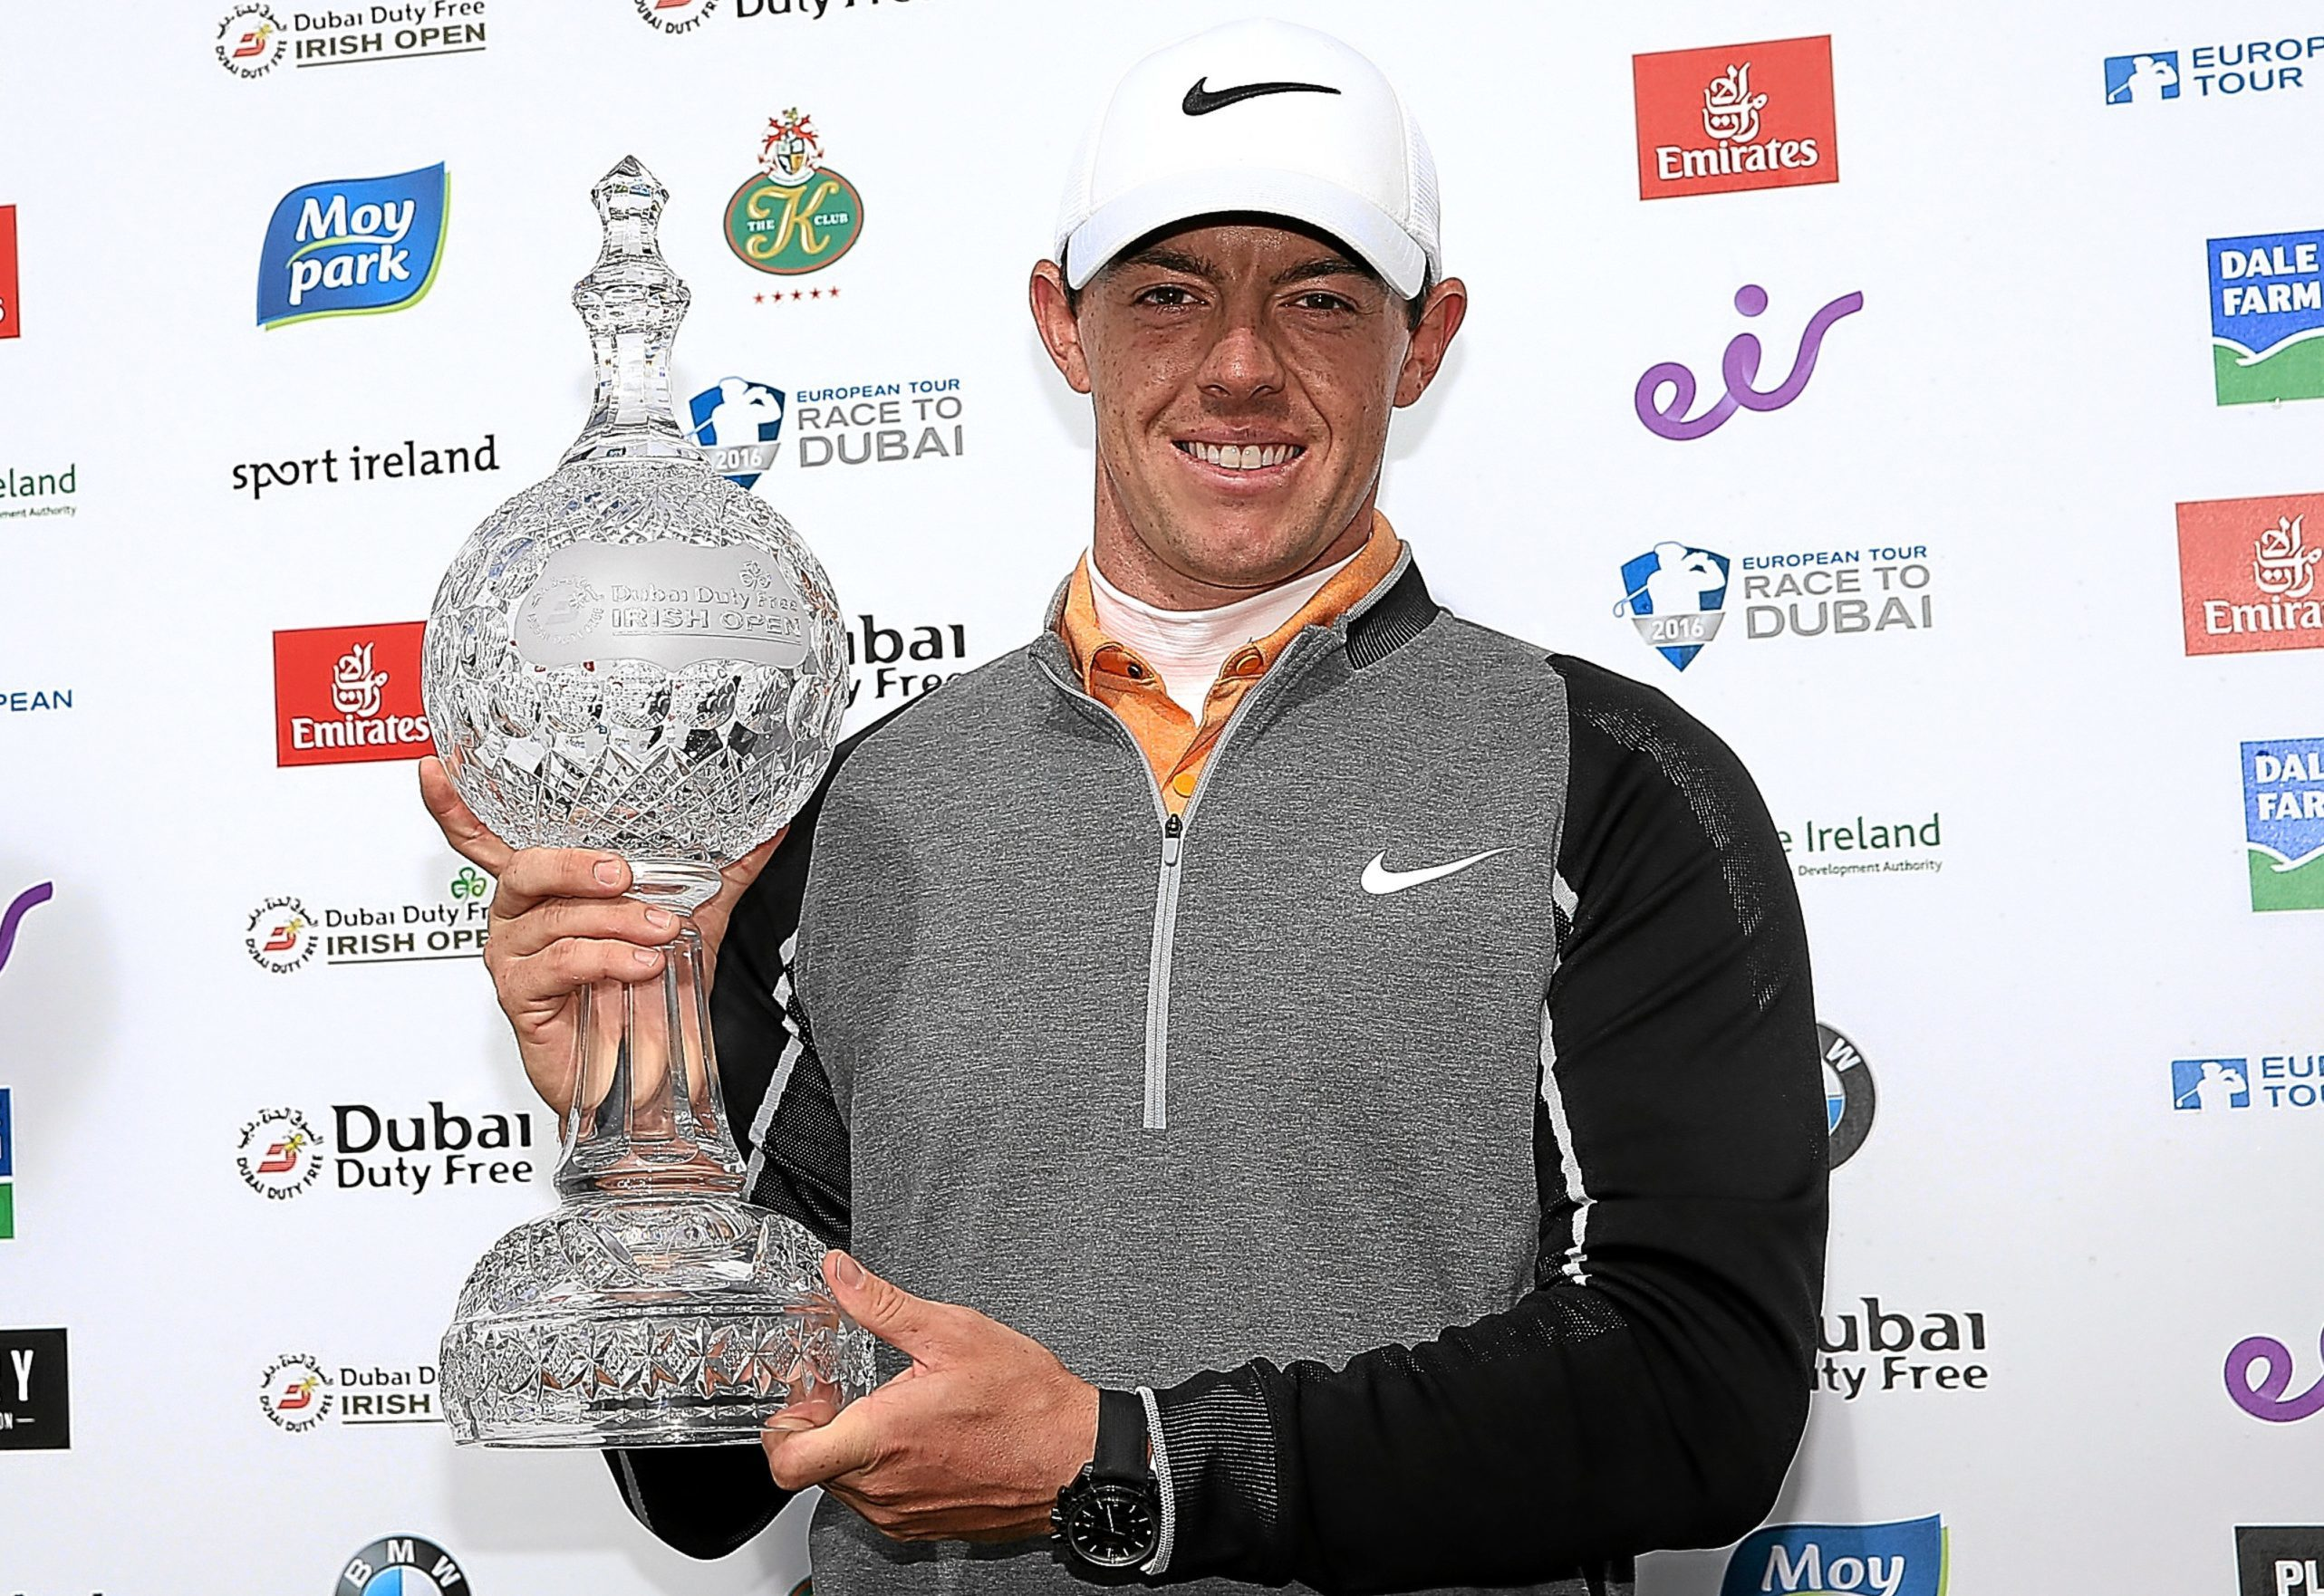 Rory McIlroy poses with the trophy.